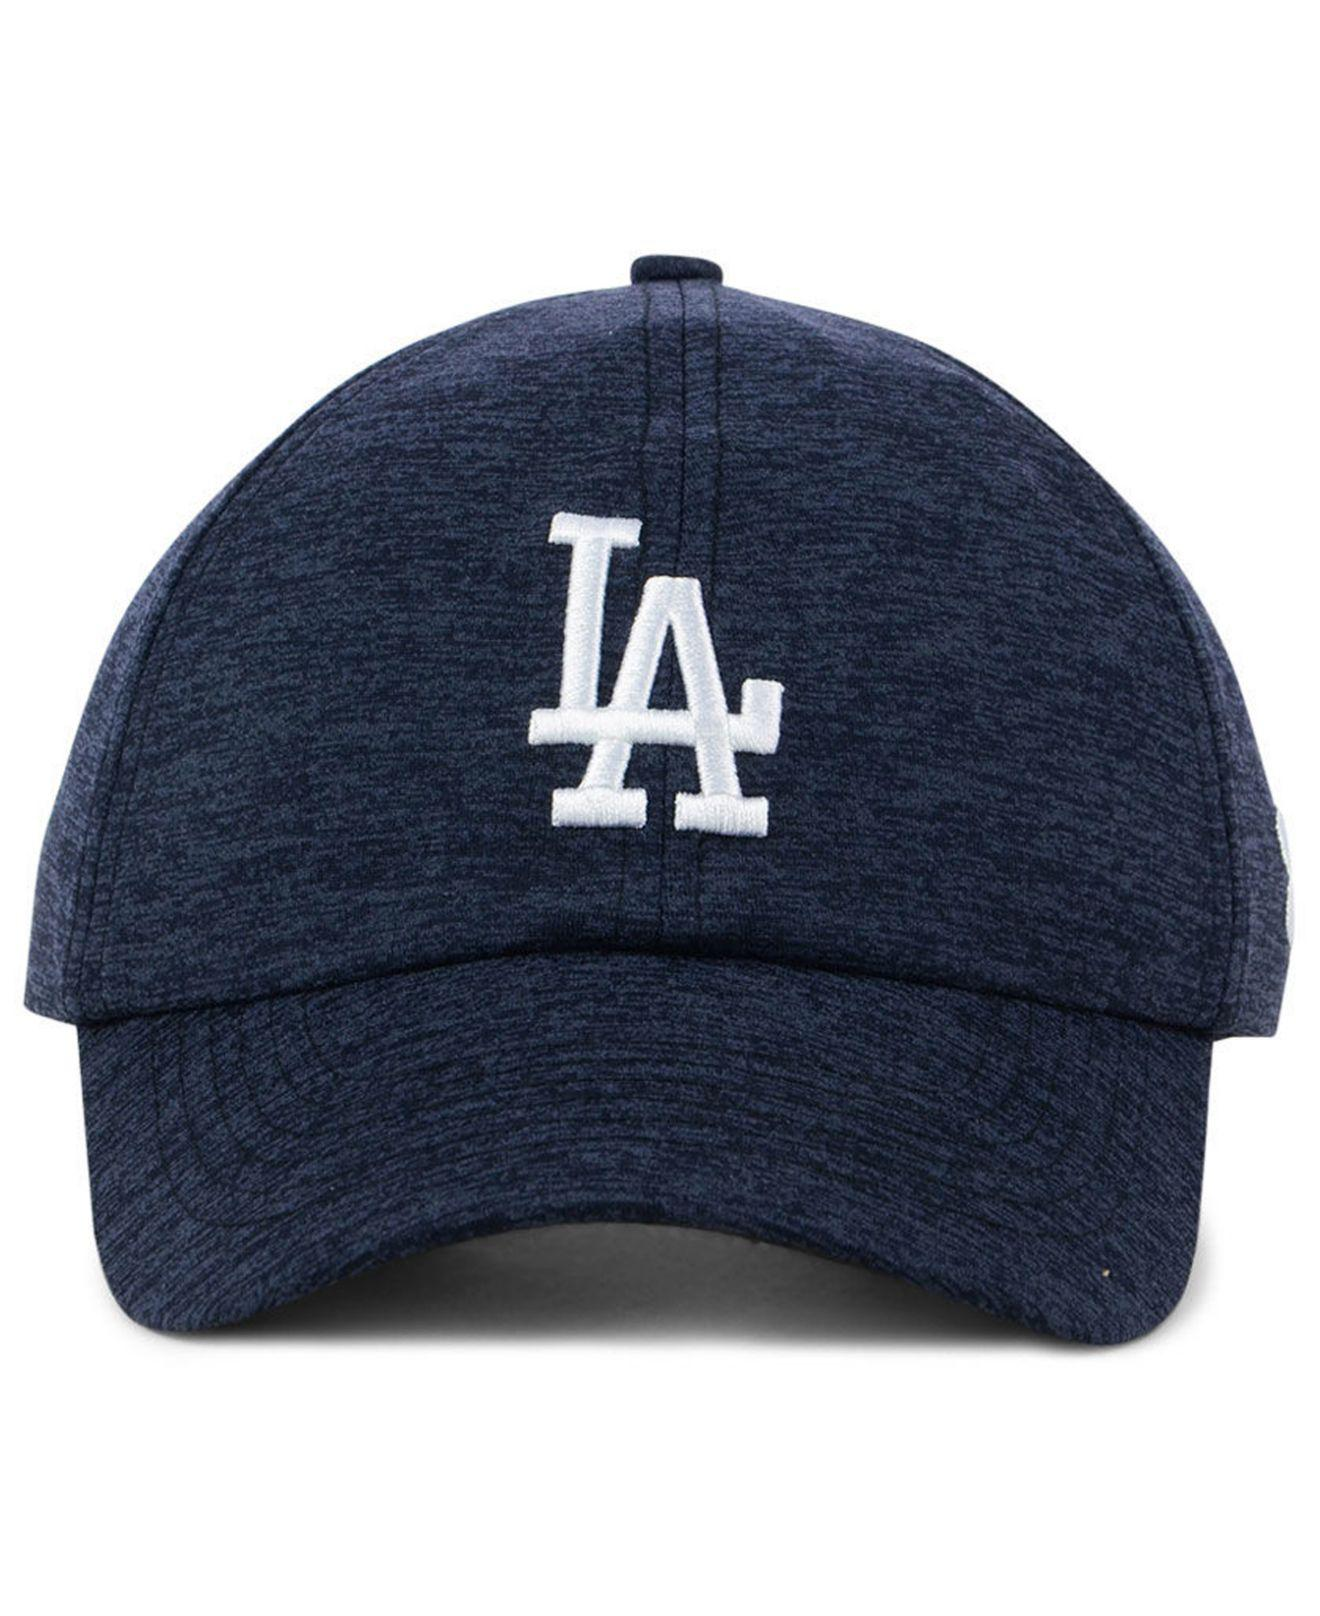 check out b121f e351d ... purchase lyst under armour los angeles dodgers renegade twist cap in  blue 886a1 2b68e